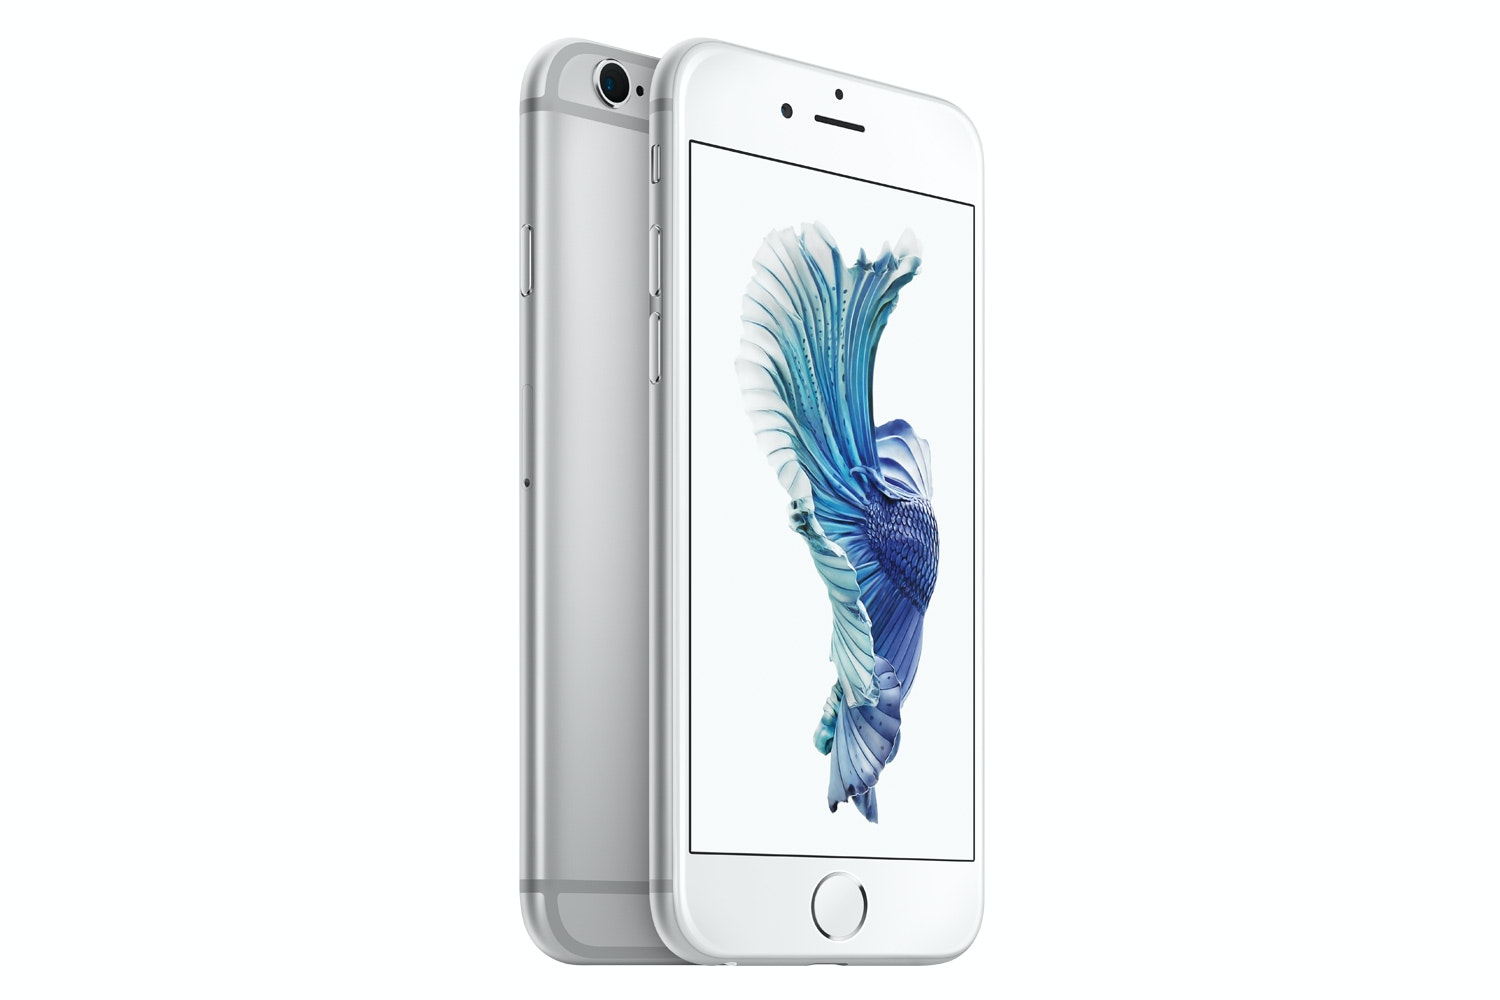 Mint+ Premium iPhone 6S | 16GB | Silver